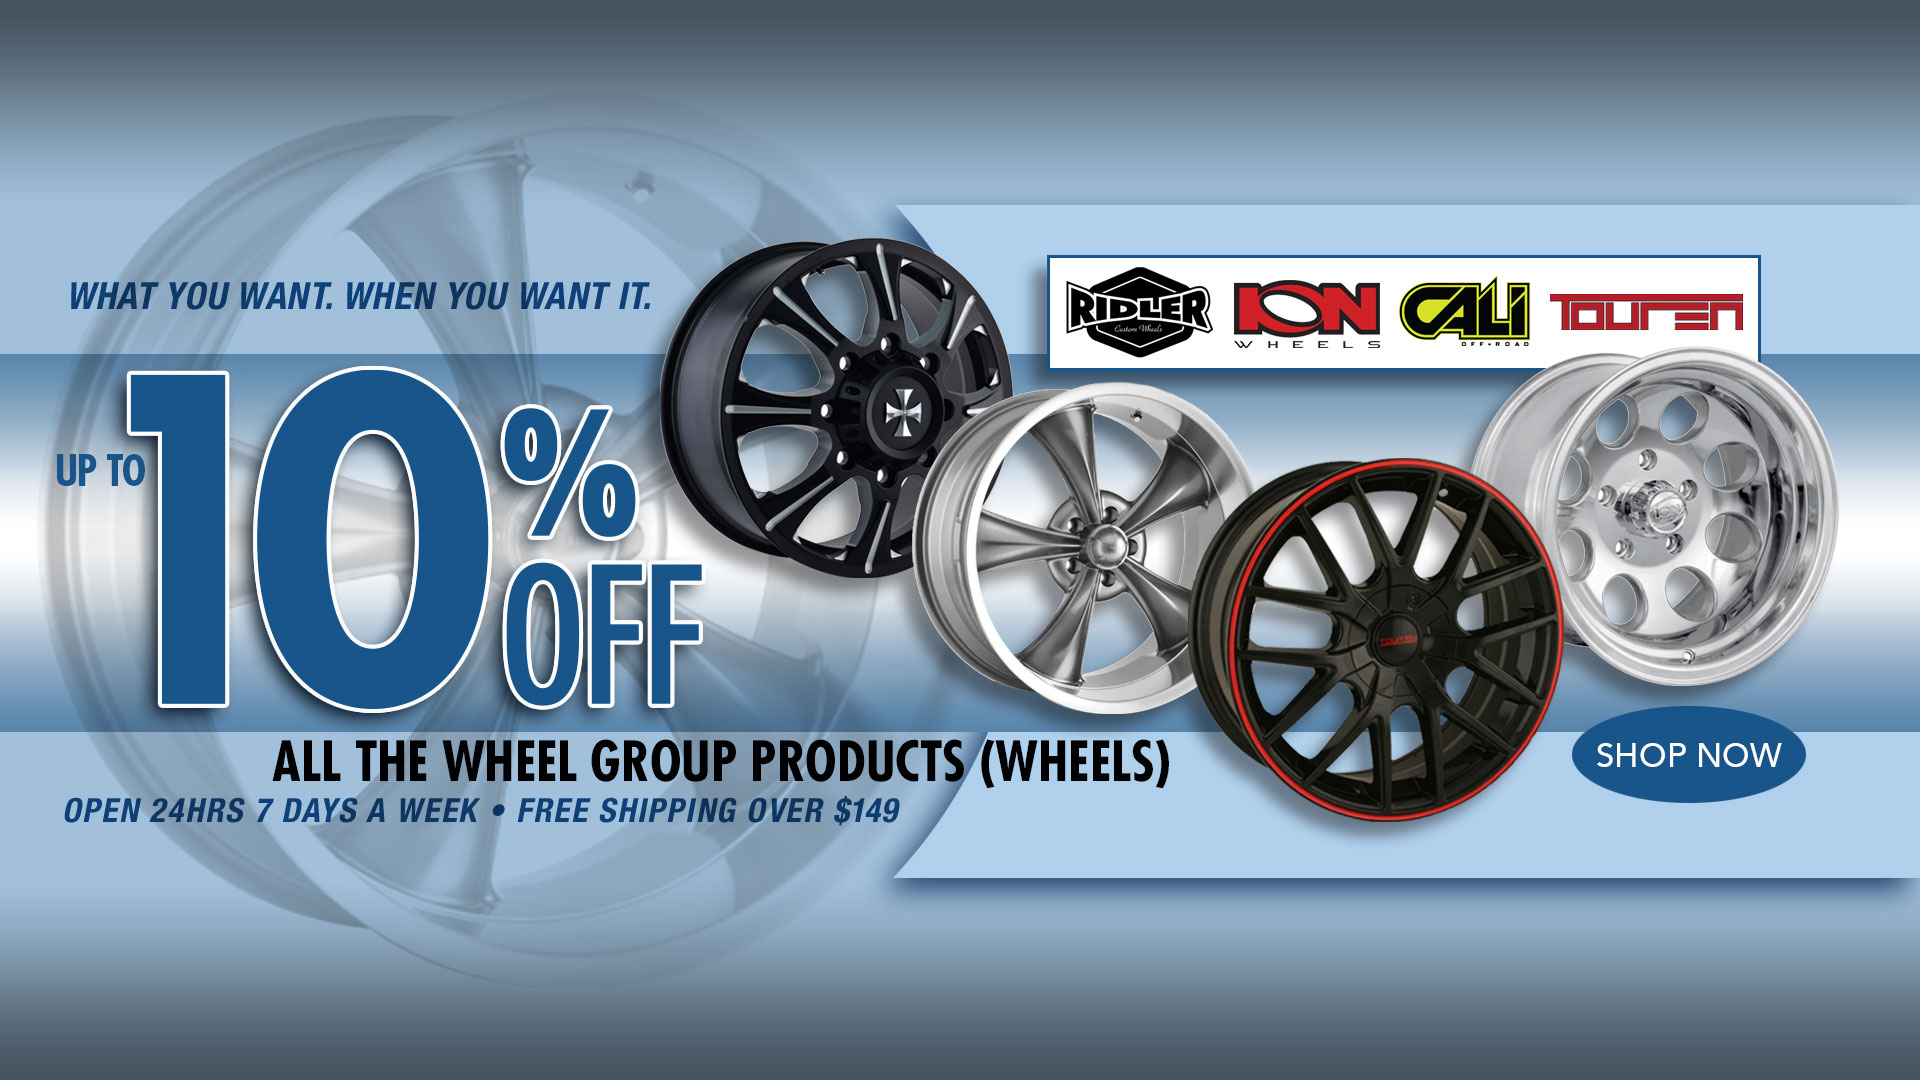 Save up to 10% on ALL The Wheel Group Products